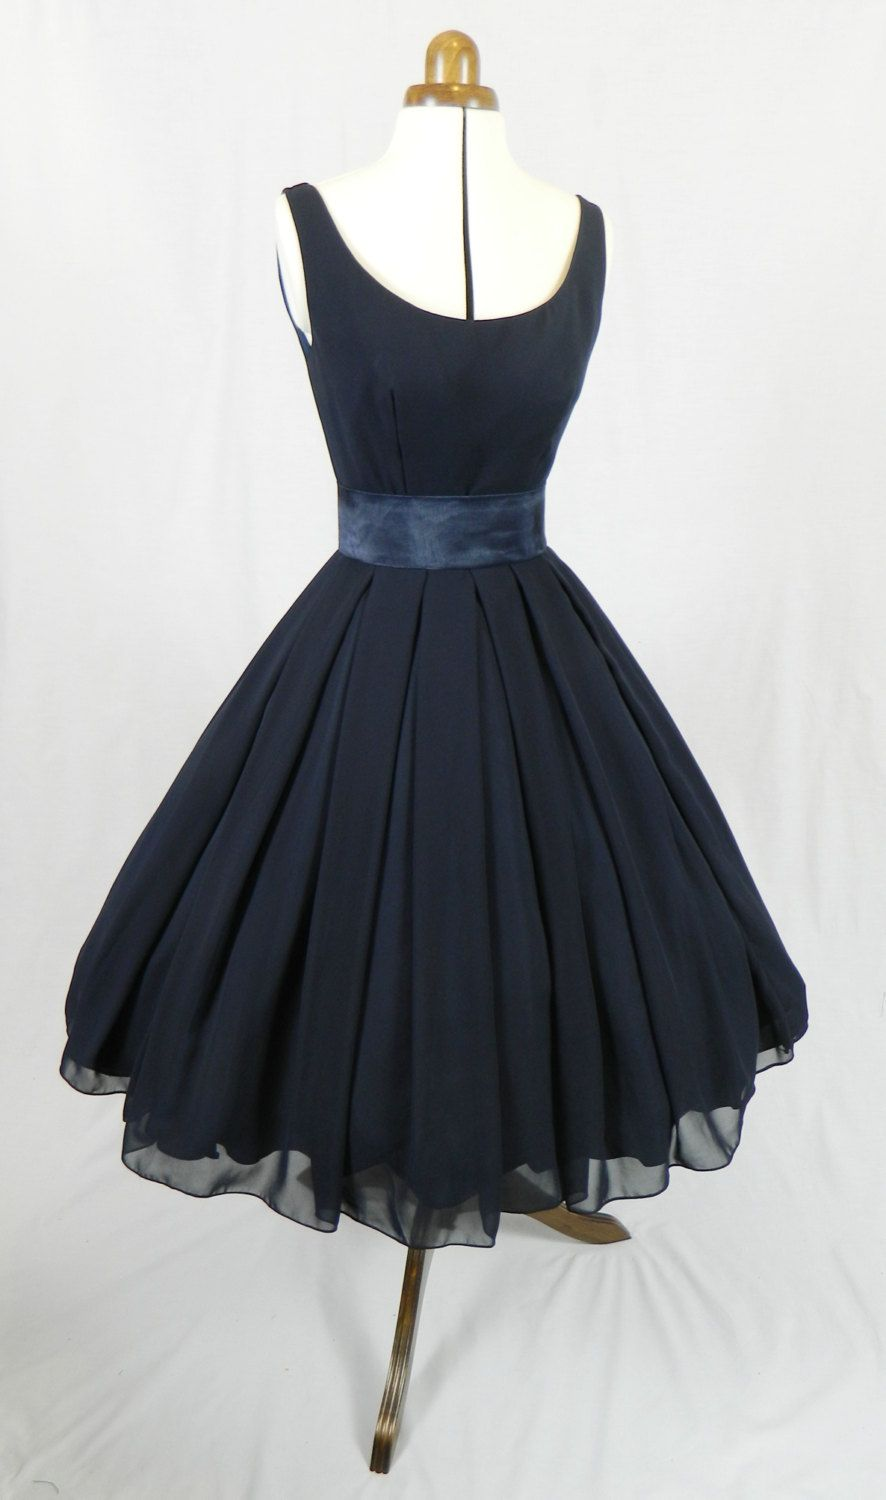 Another Of Our 50s Style Elegant Cocktail Dresses In Navy Chiffon With Slim Satin Shantung Waist Band Elegant Cocktail Dress Dresses 50s Fashion [ 1500 x 886 Pixel ]